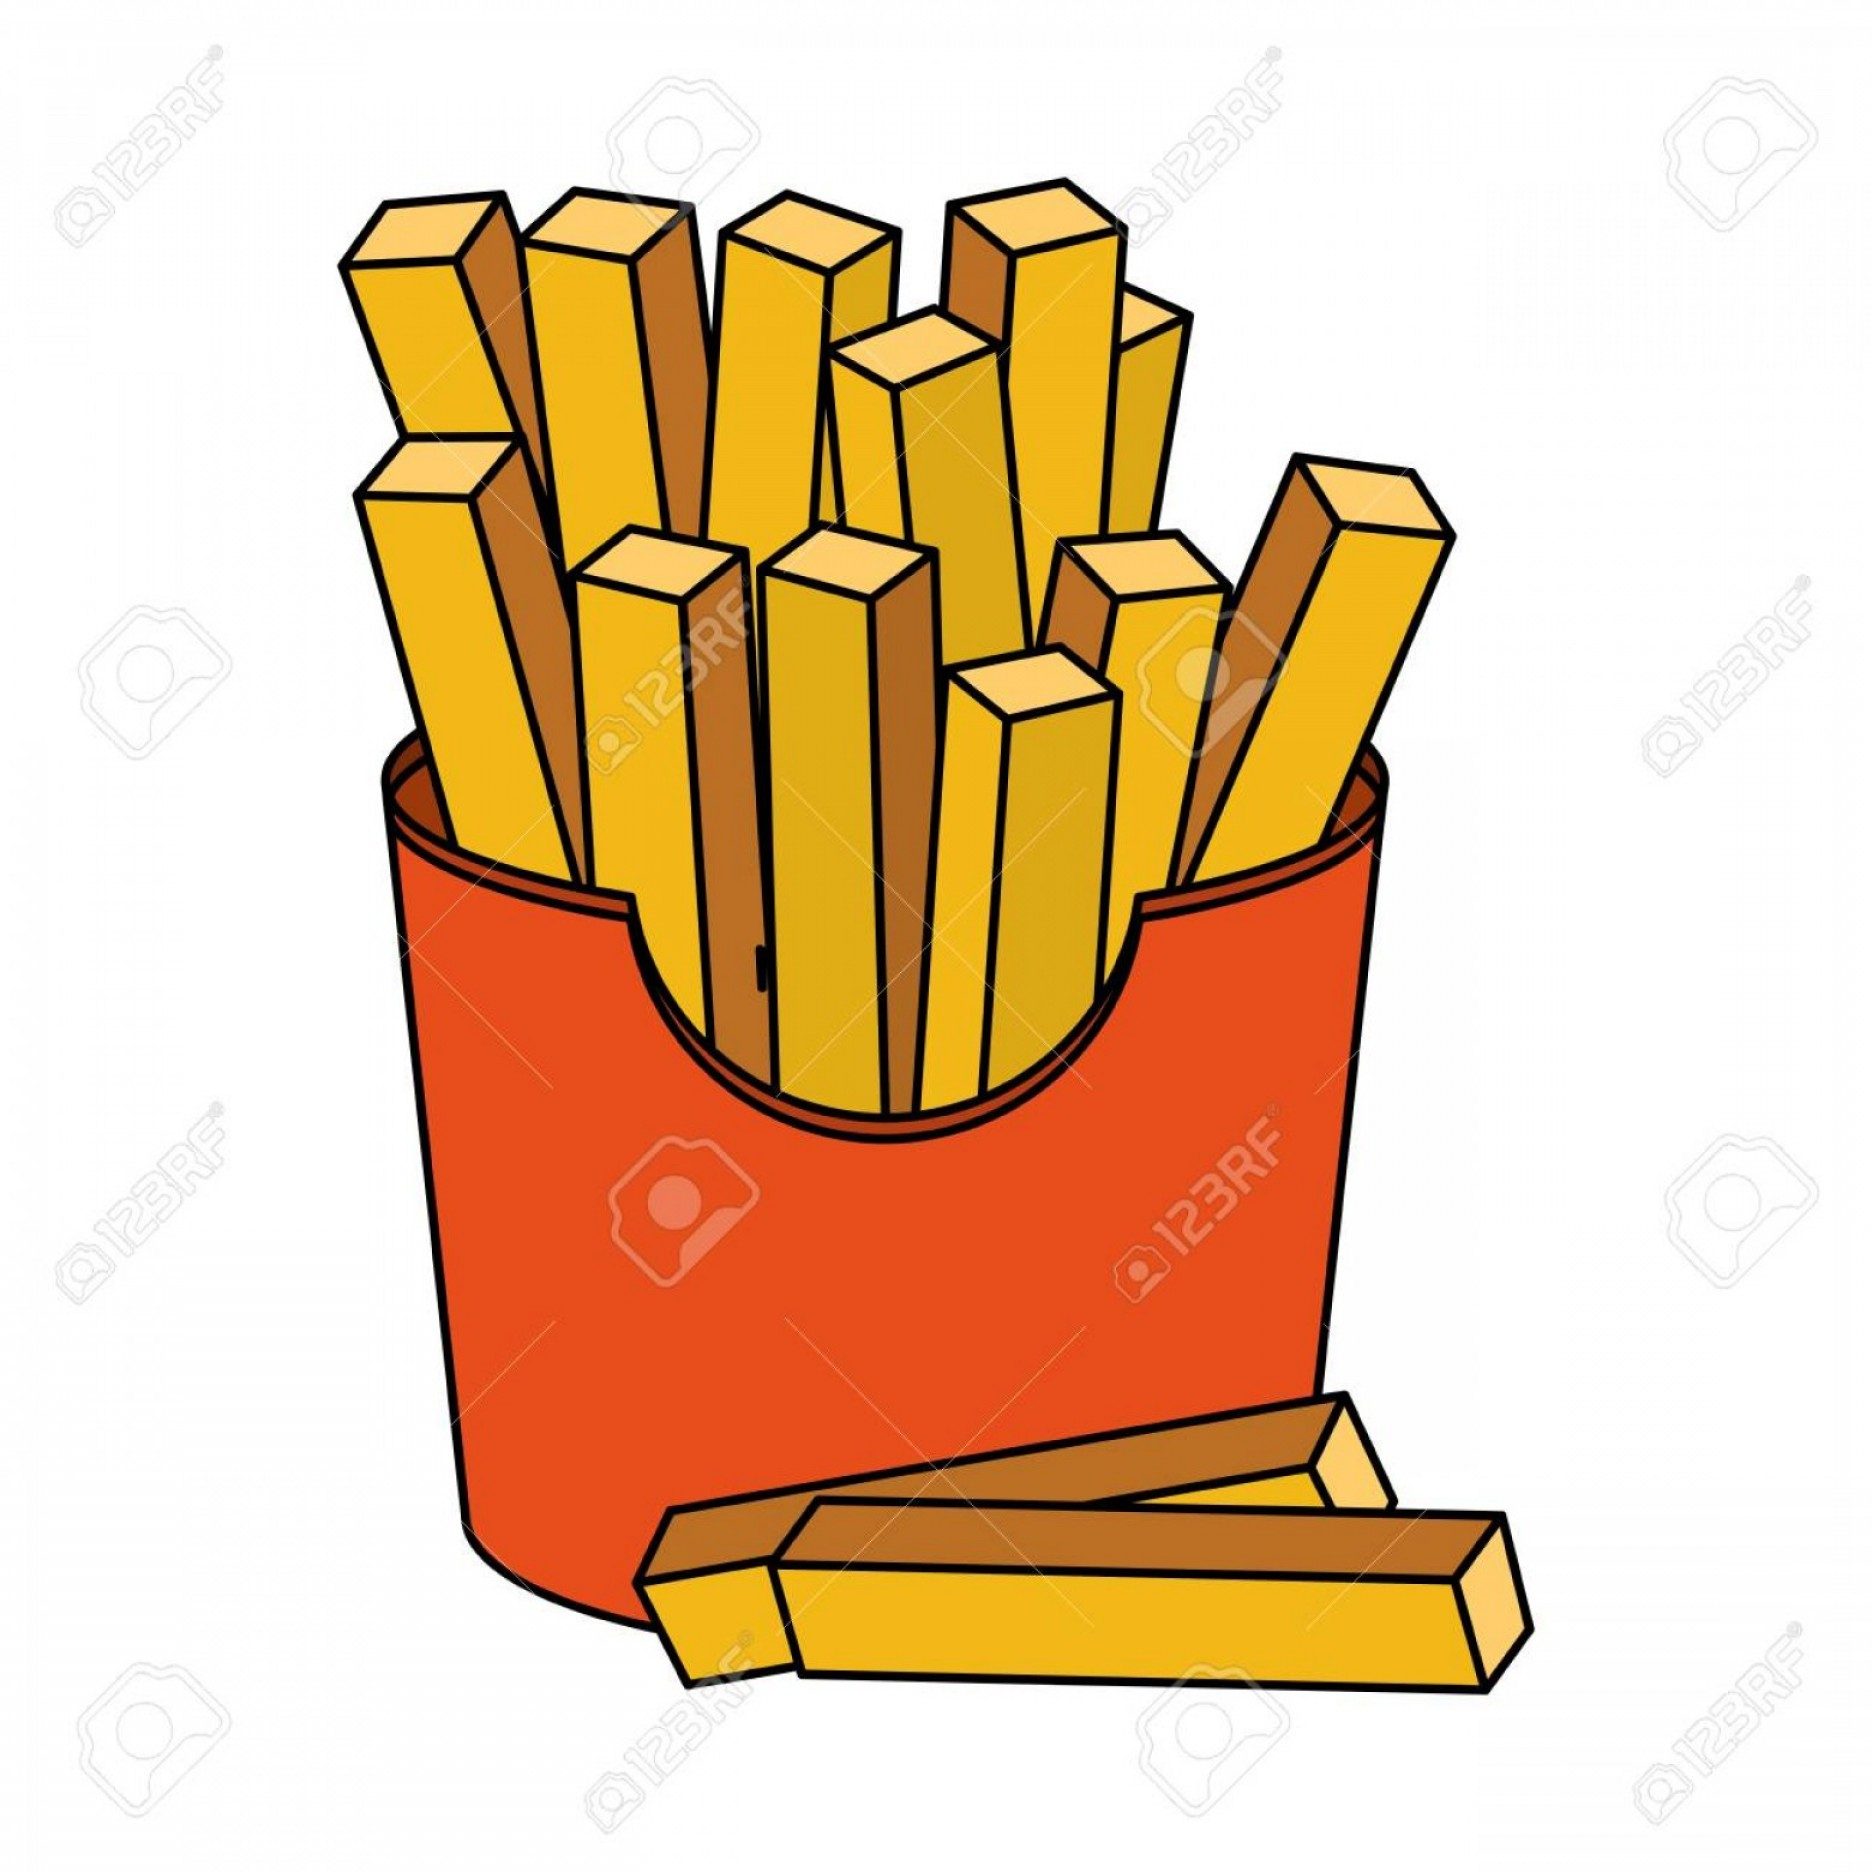 Fries Vector: Photostock Vector Color Image Cartoon Box With French Fries Vector Illustration